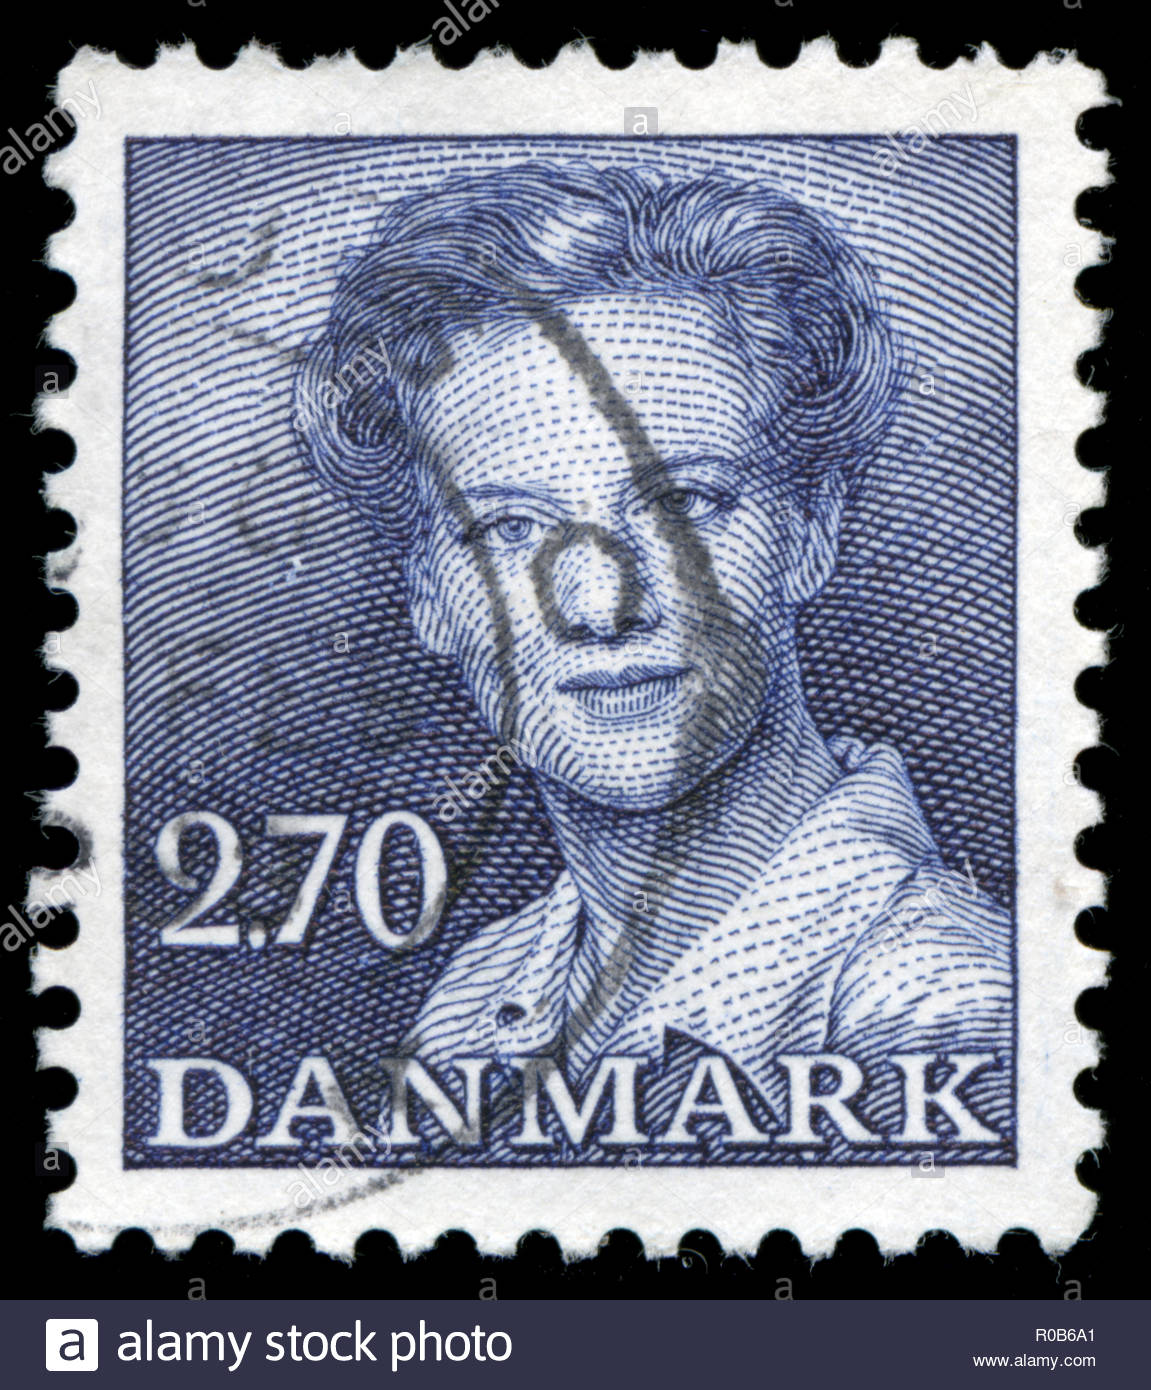 Postmarked stamp from the Denmark in the Queen Margrethe II serie 2 - Stock Image